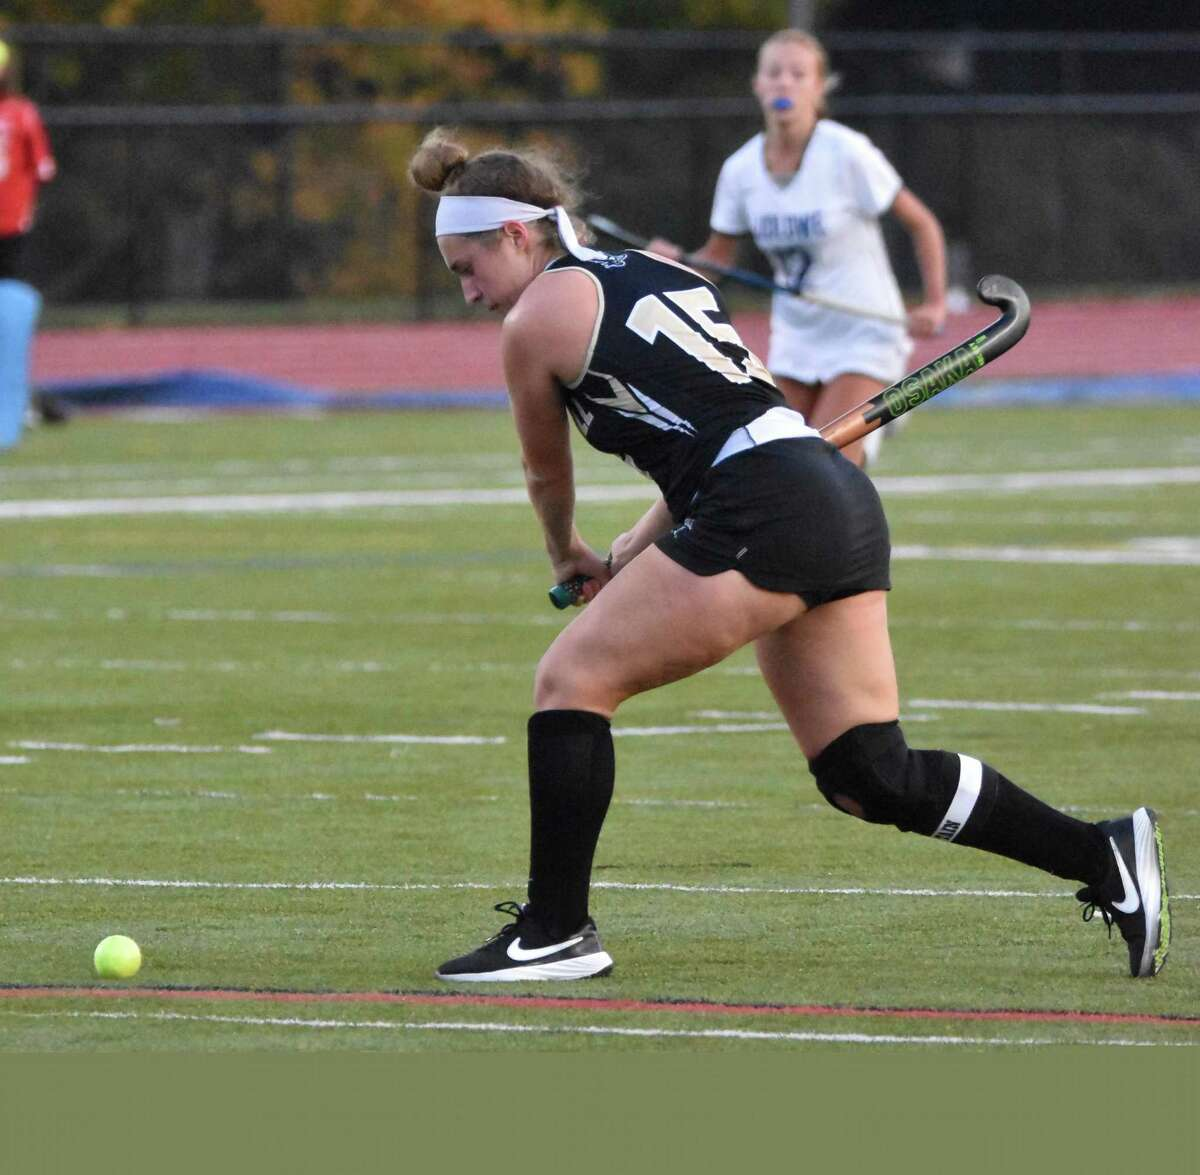 Senior tri-captain Gigi Socci assisted on the Eagles' first goal in their win over Fairfield Ludlowe.